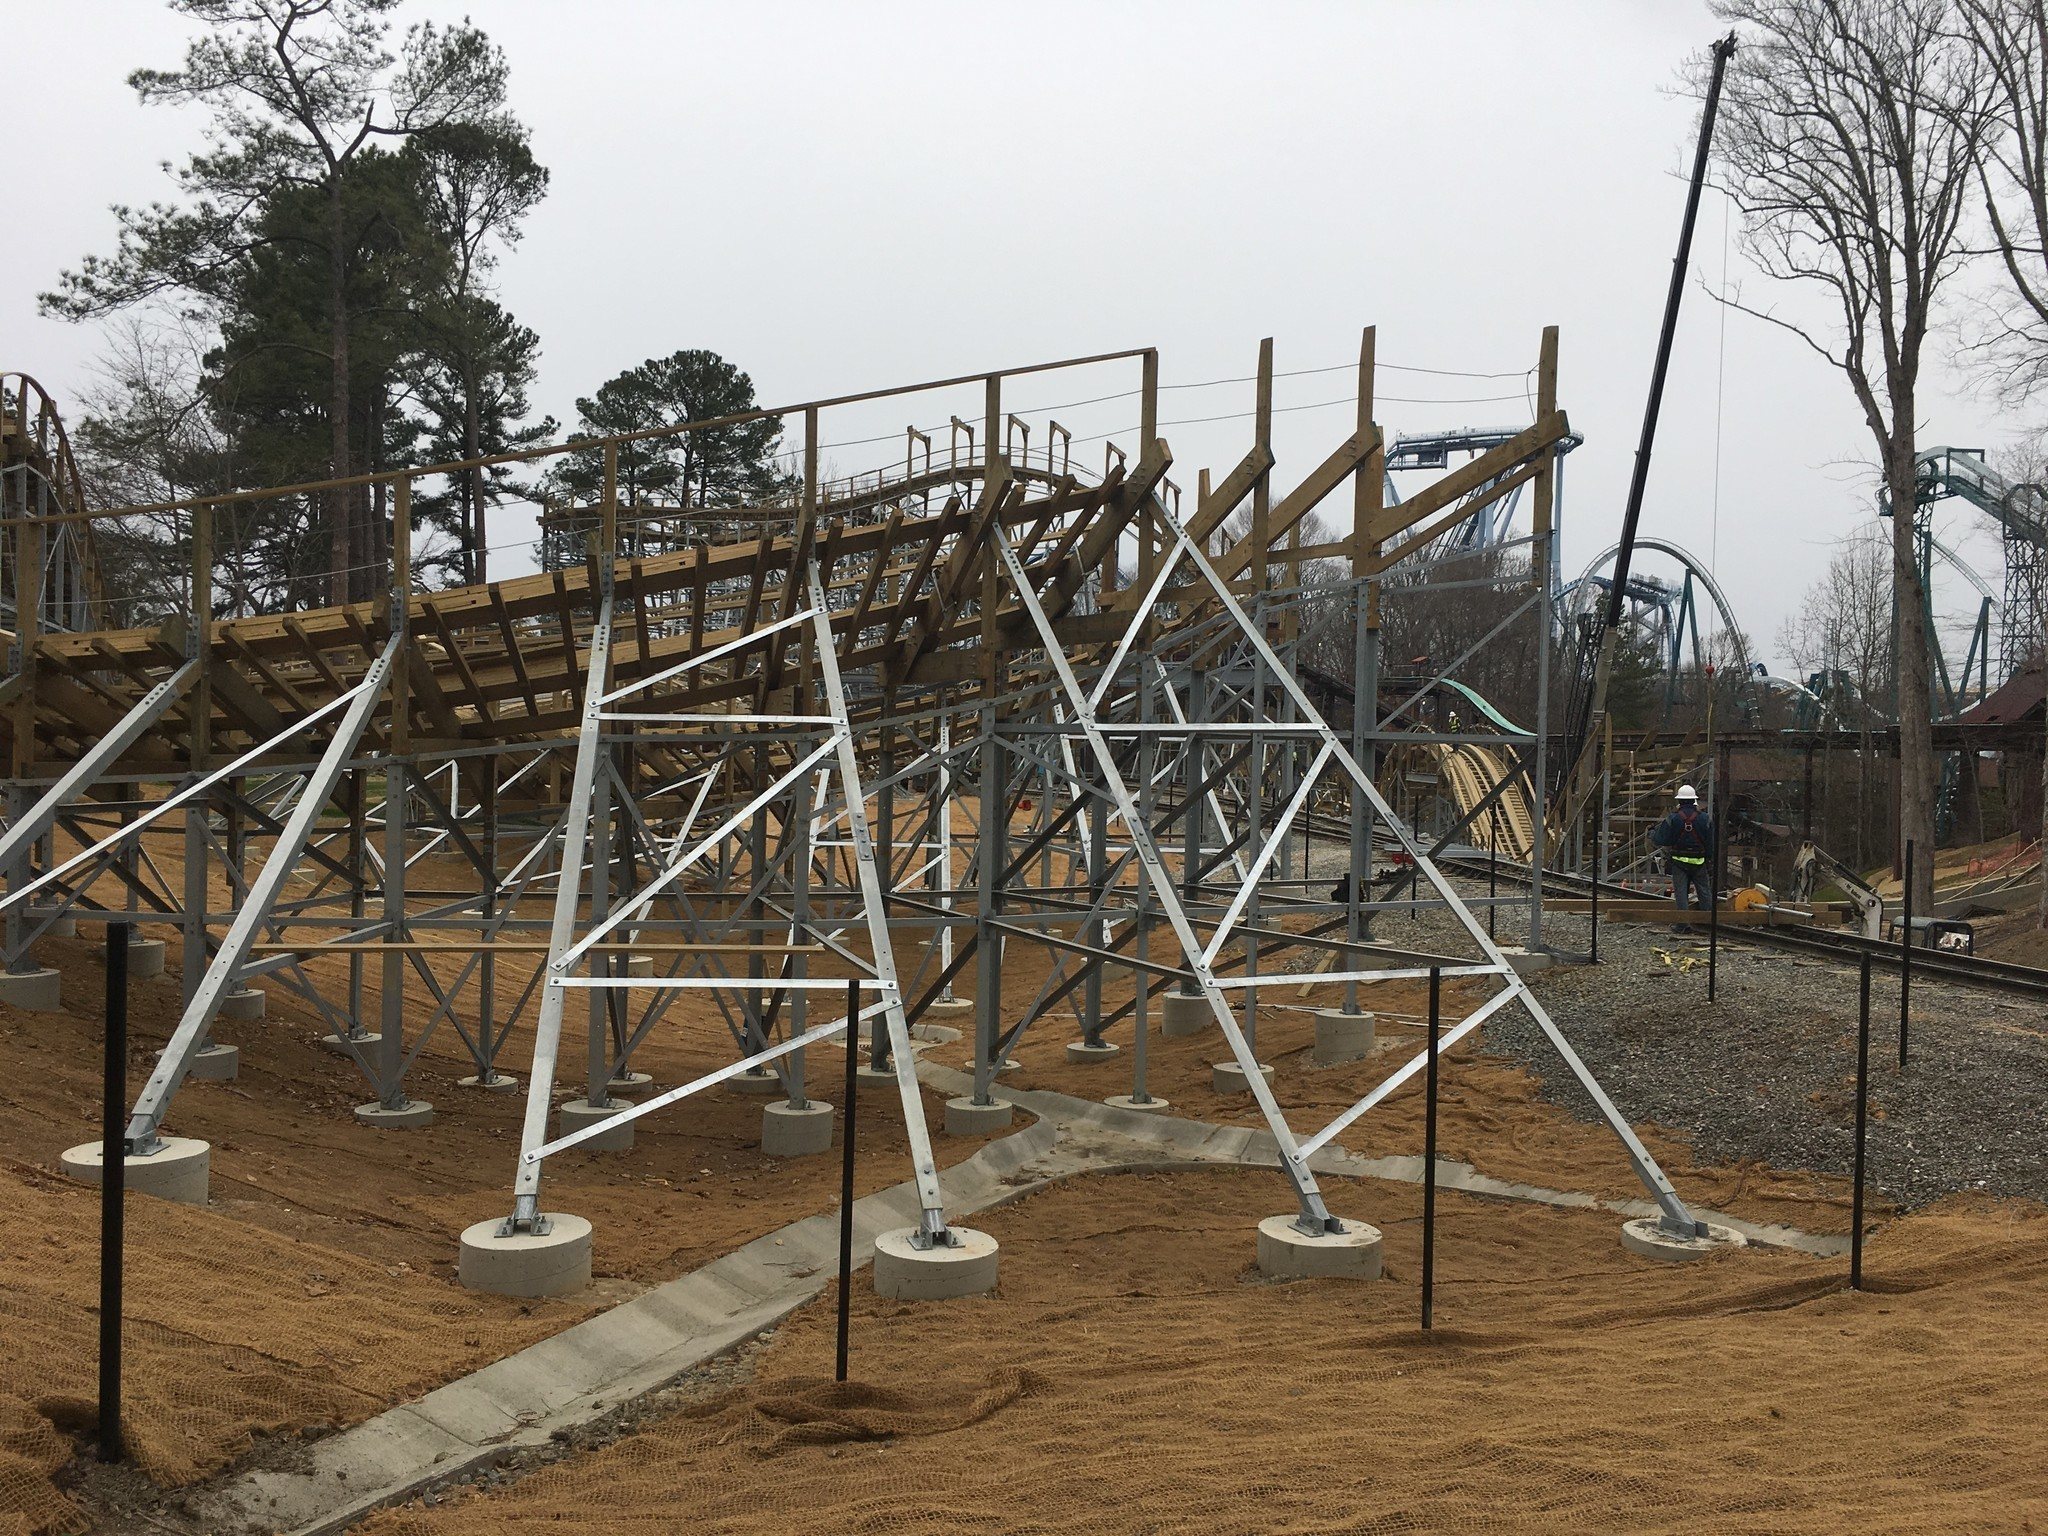 Busch Gardens Shows Off New Wooden Roller Coaster Daily Press